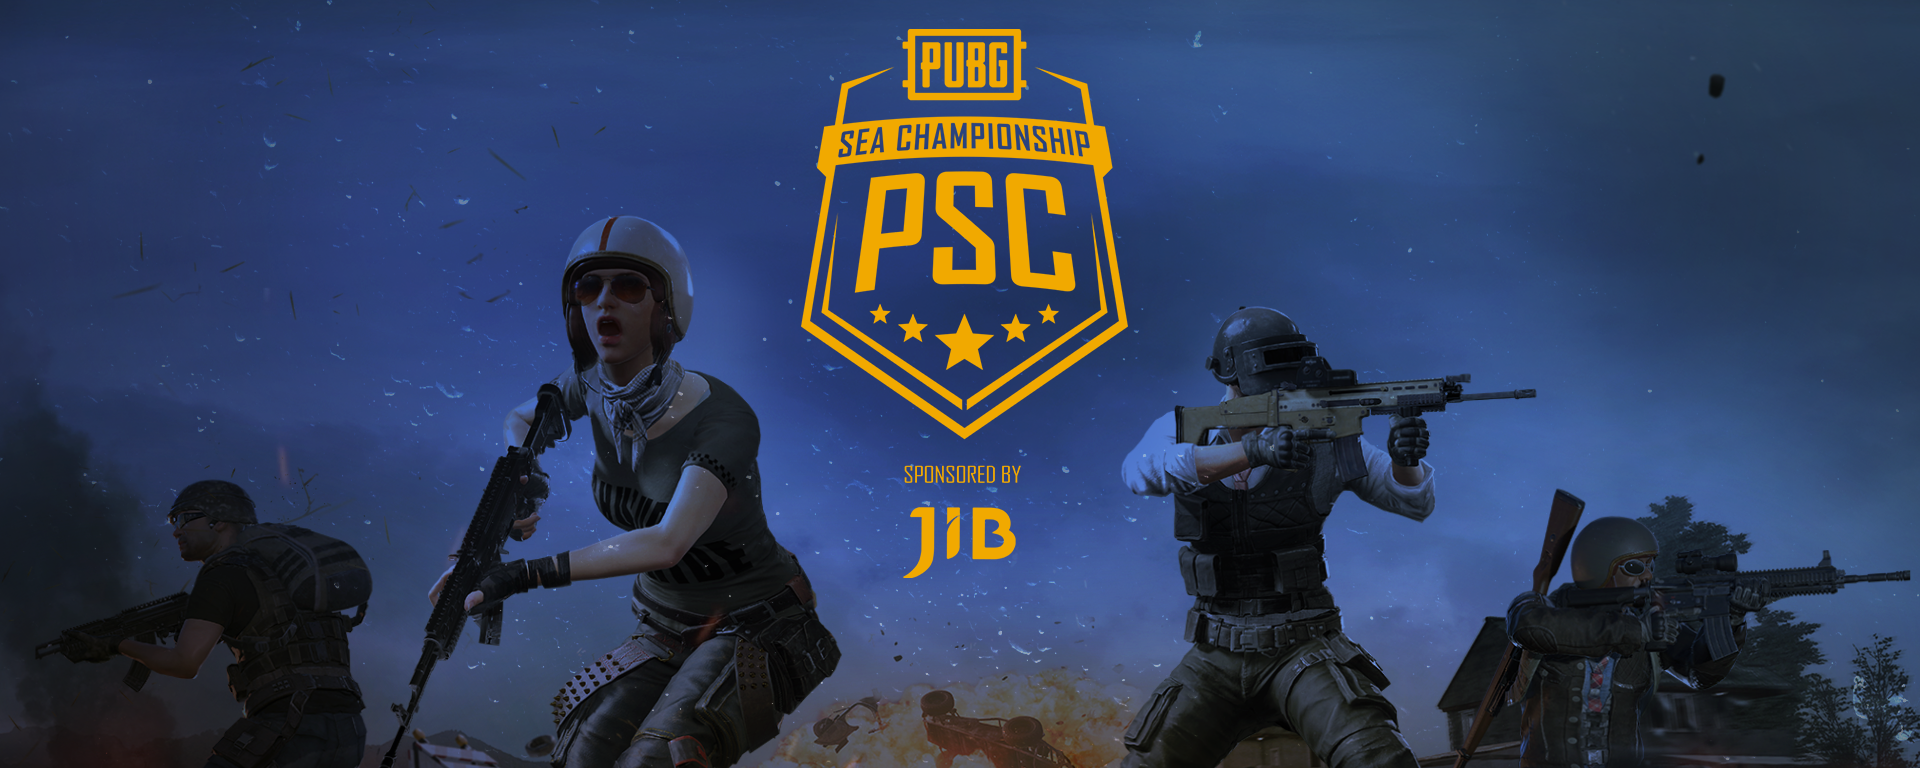 PSC-event-banner